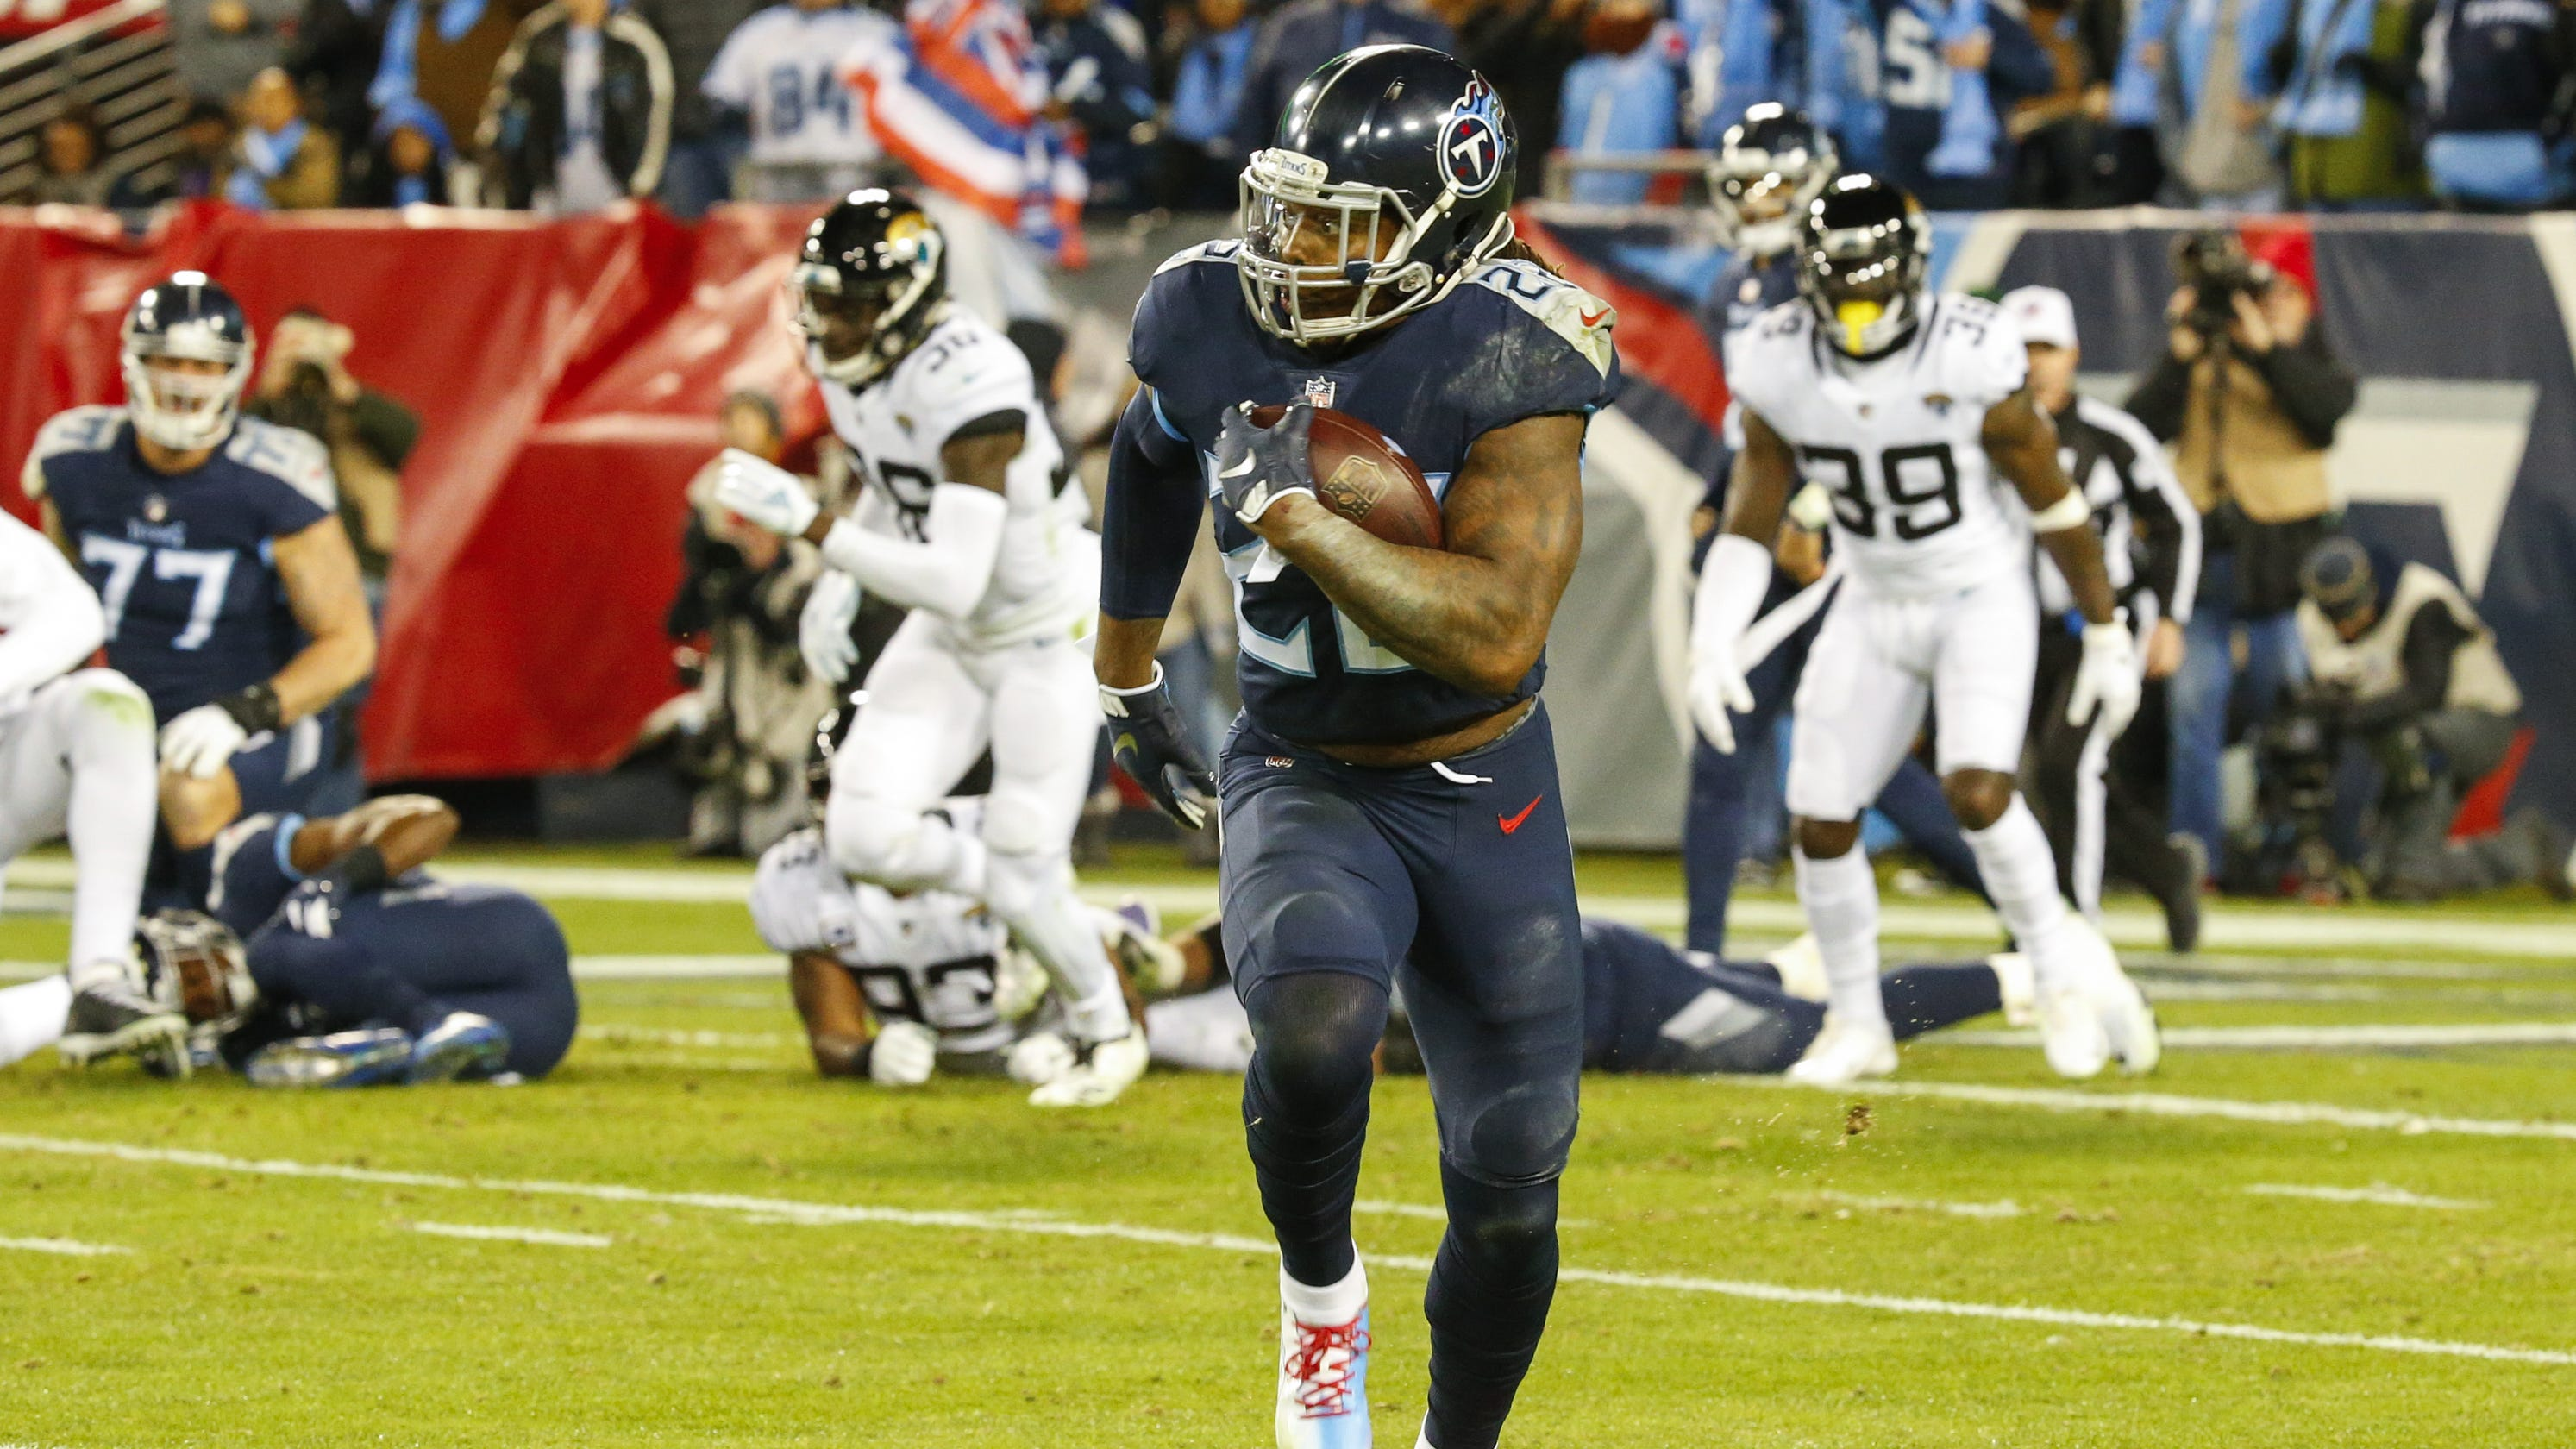 feff2c16479 Derrick Henry ties Tony Dorsett s NFL record with 99-yard TD run in win  over Jaguars